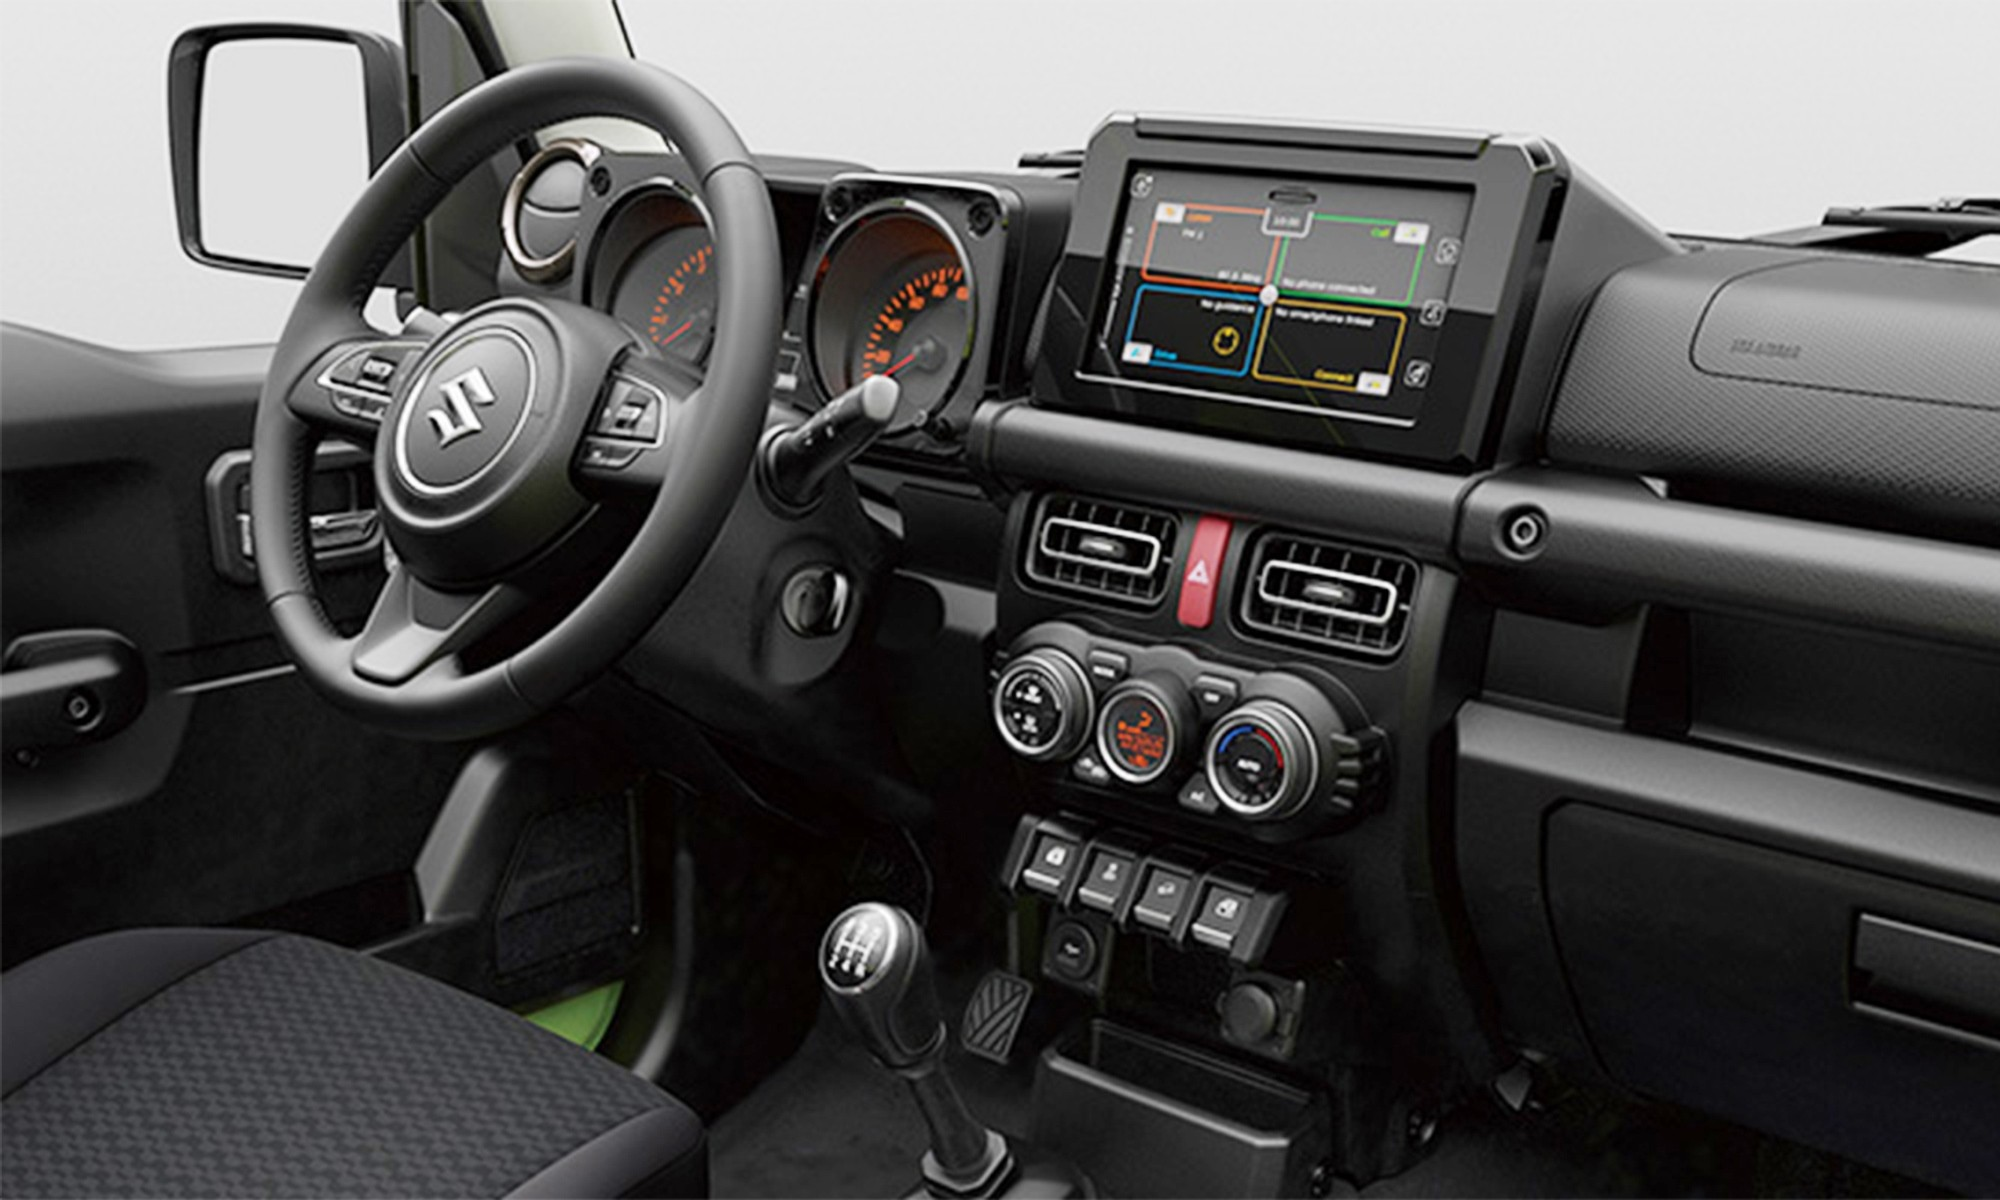 Note the colour screen and buttons on the steering wheel